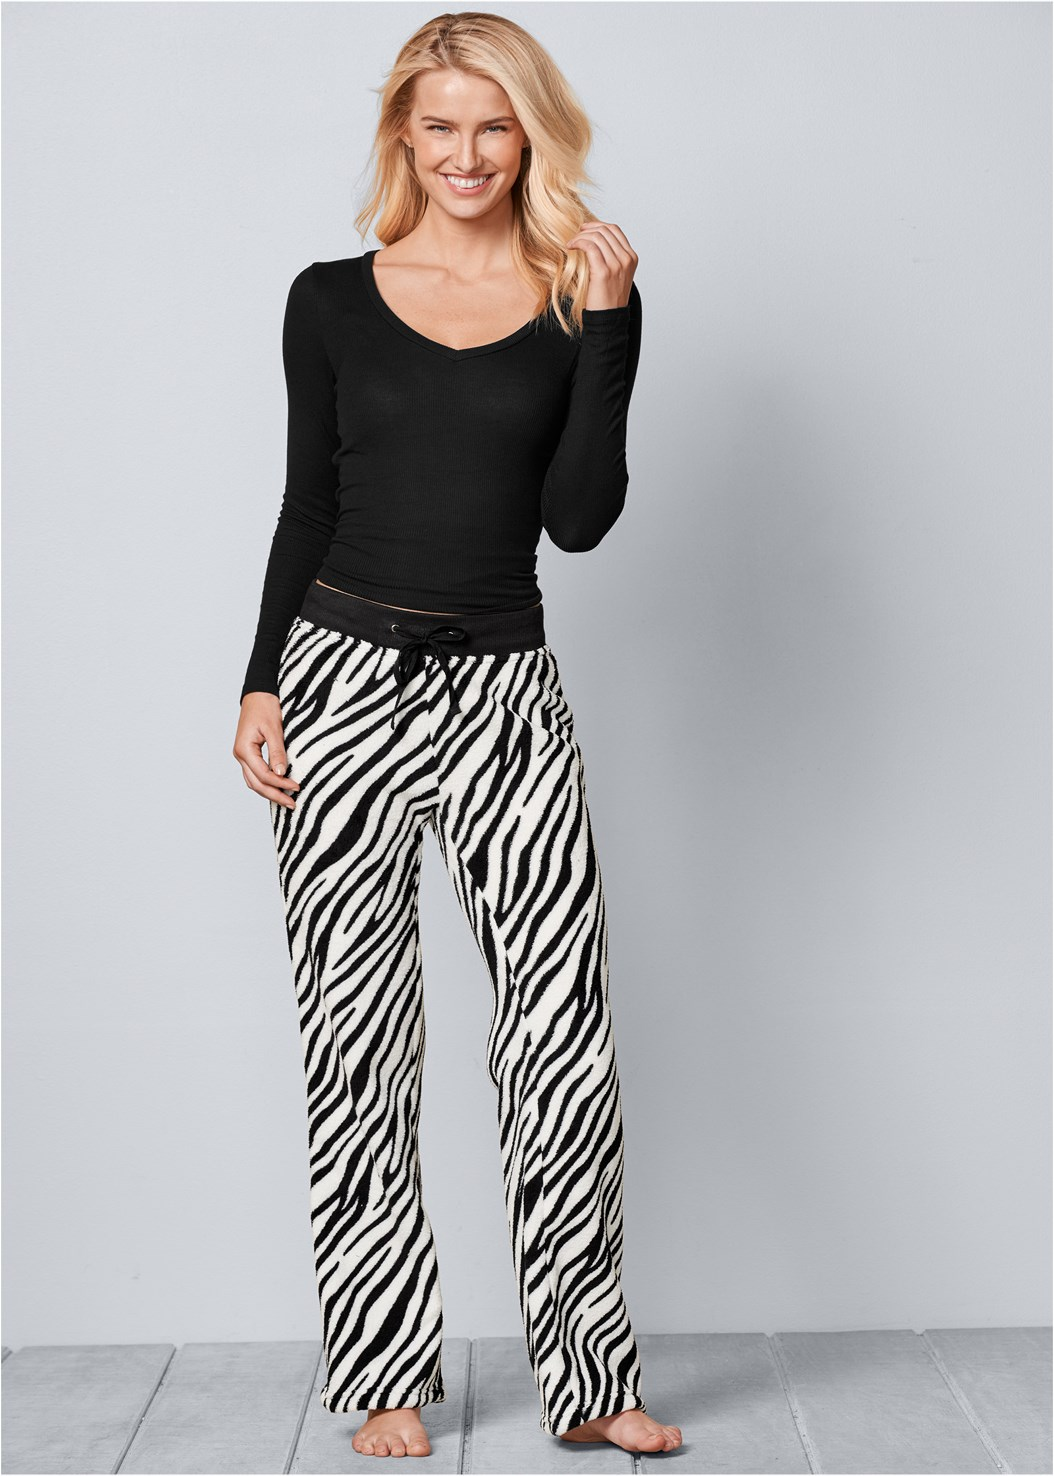 Wooby Plush Pants,Ribbed V-Neck Top